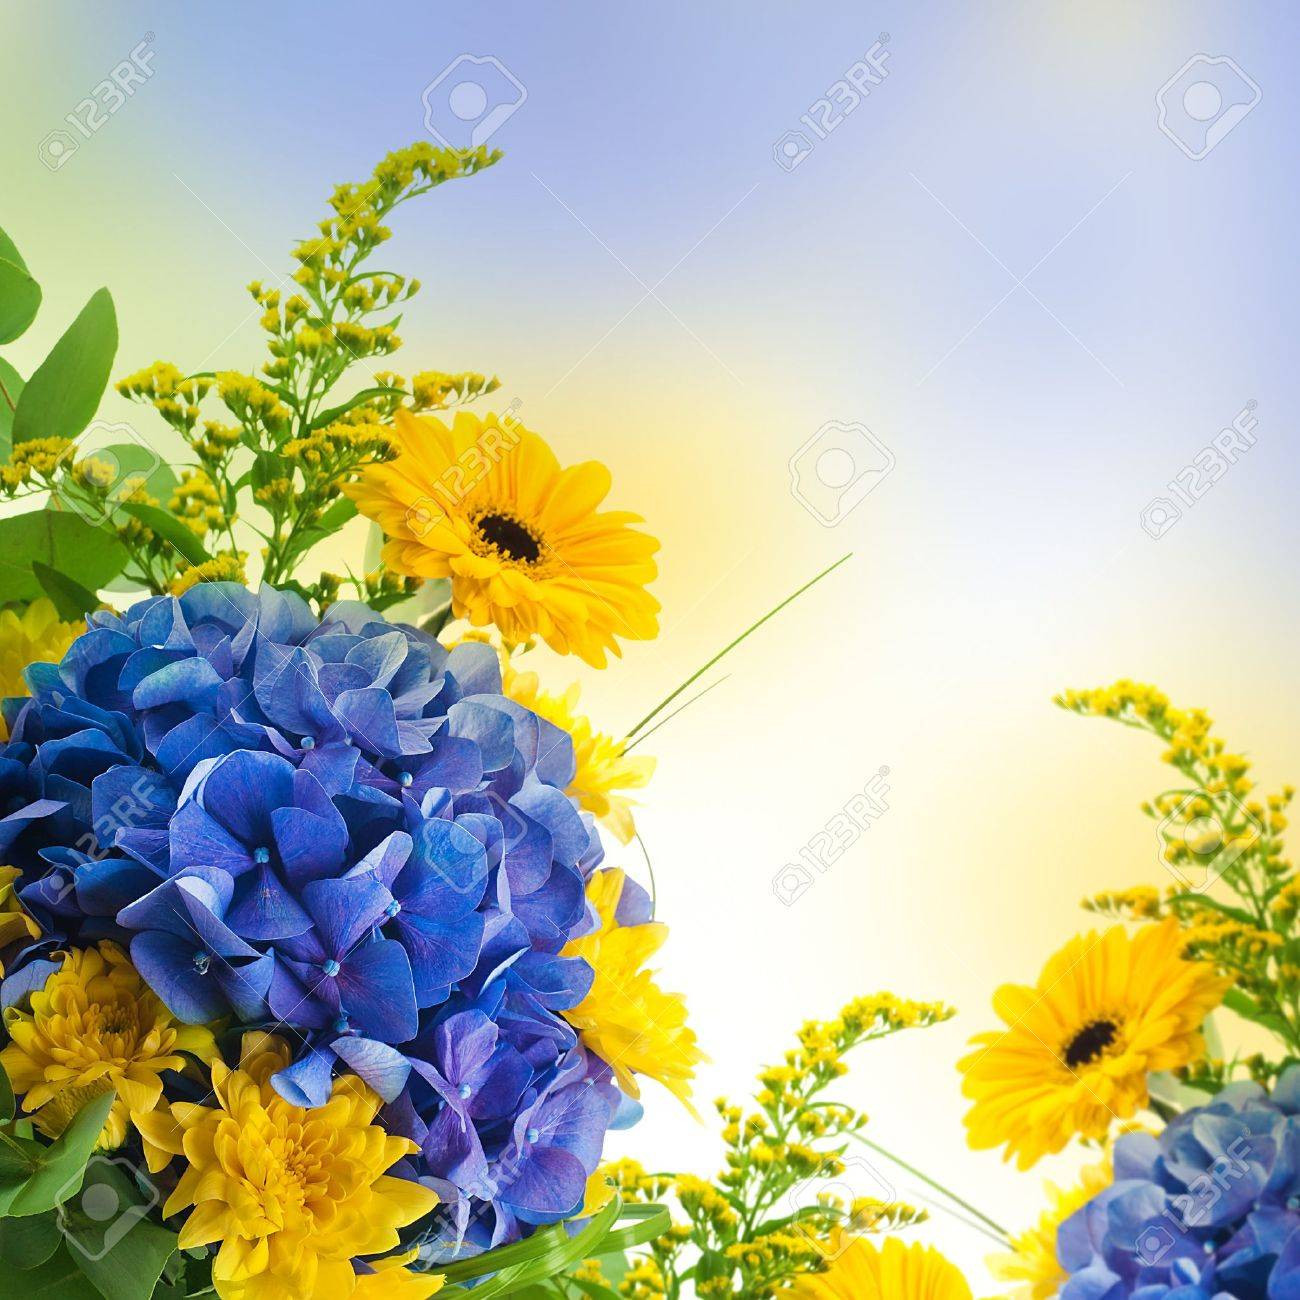 24+ Yellow Flower Background Images